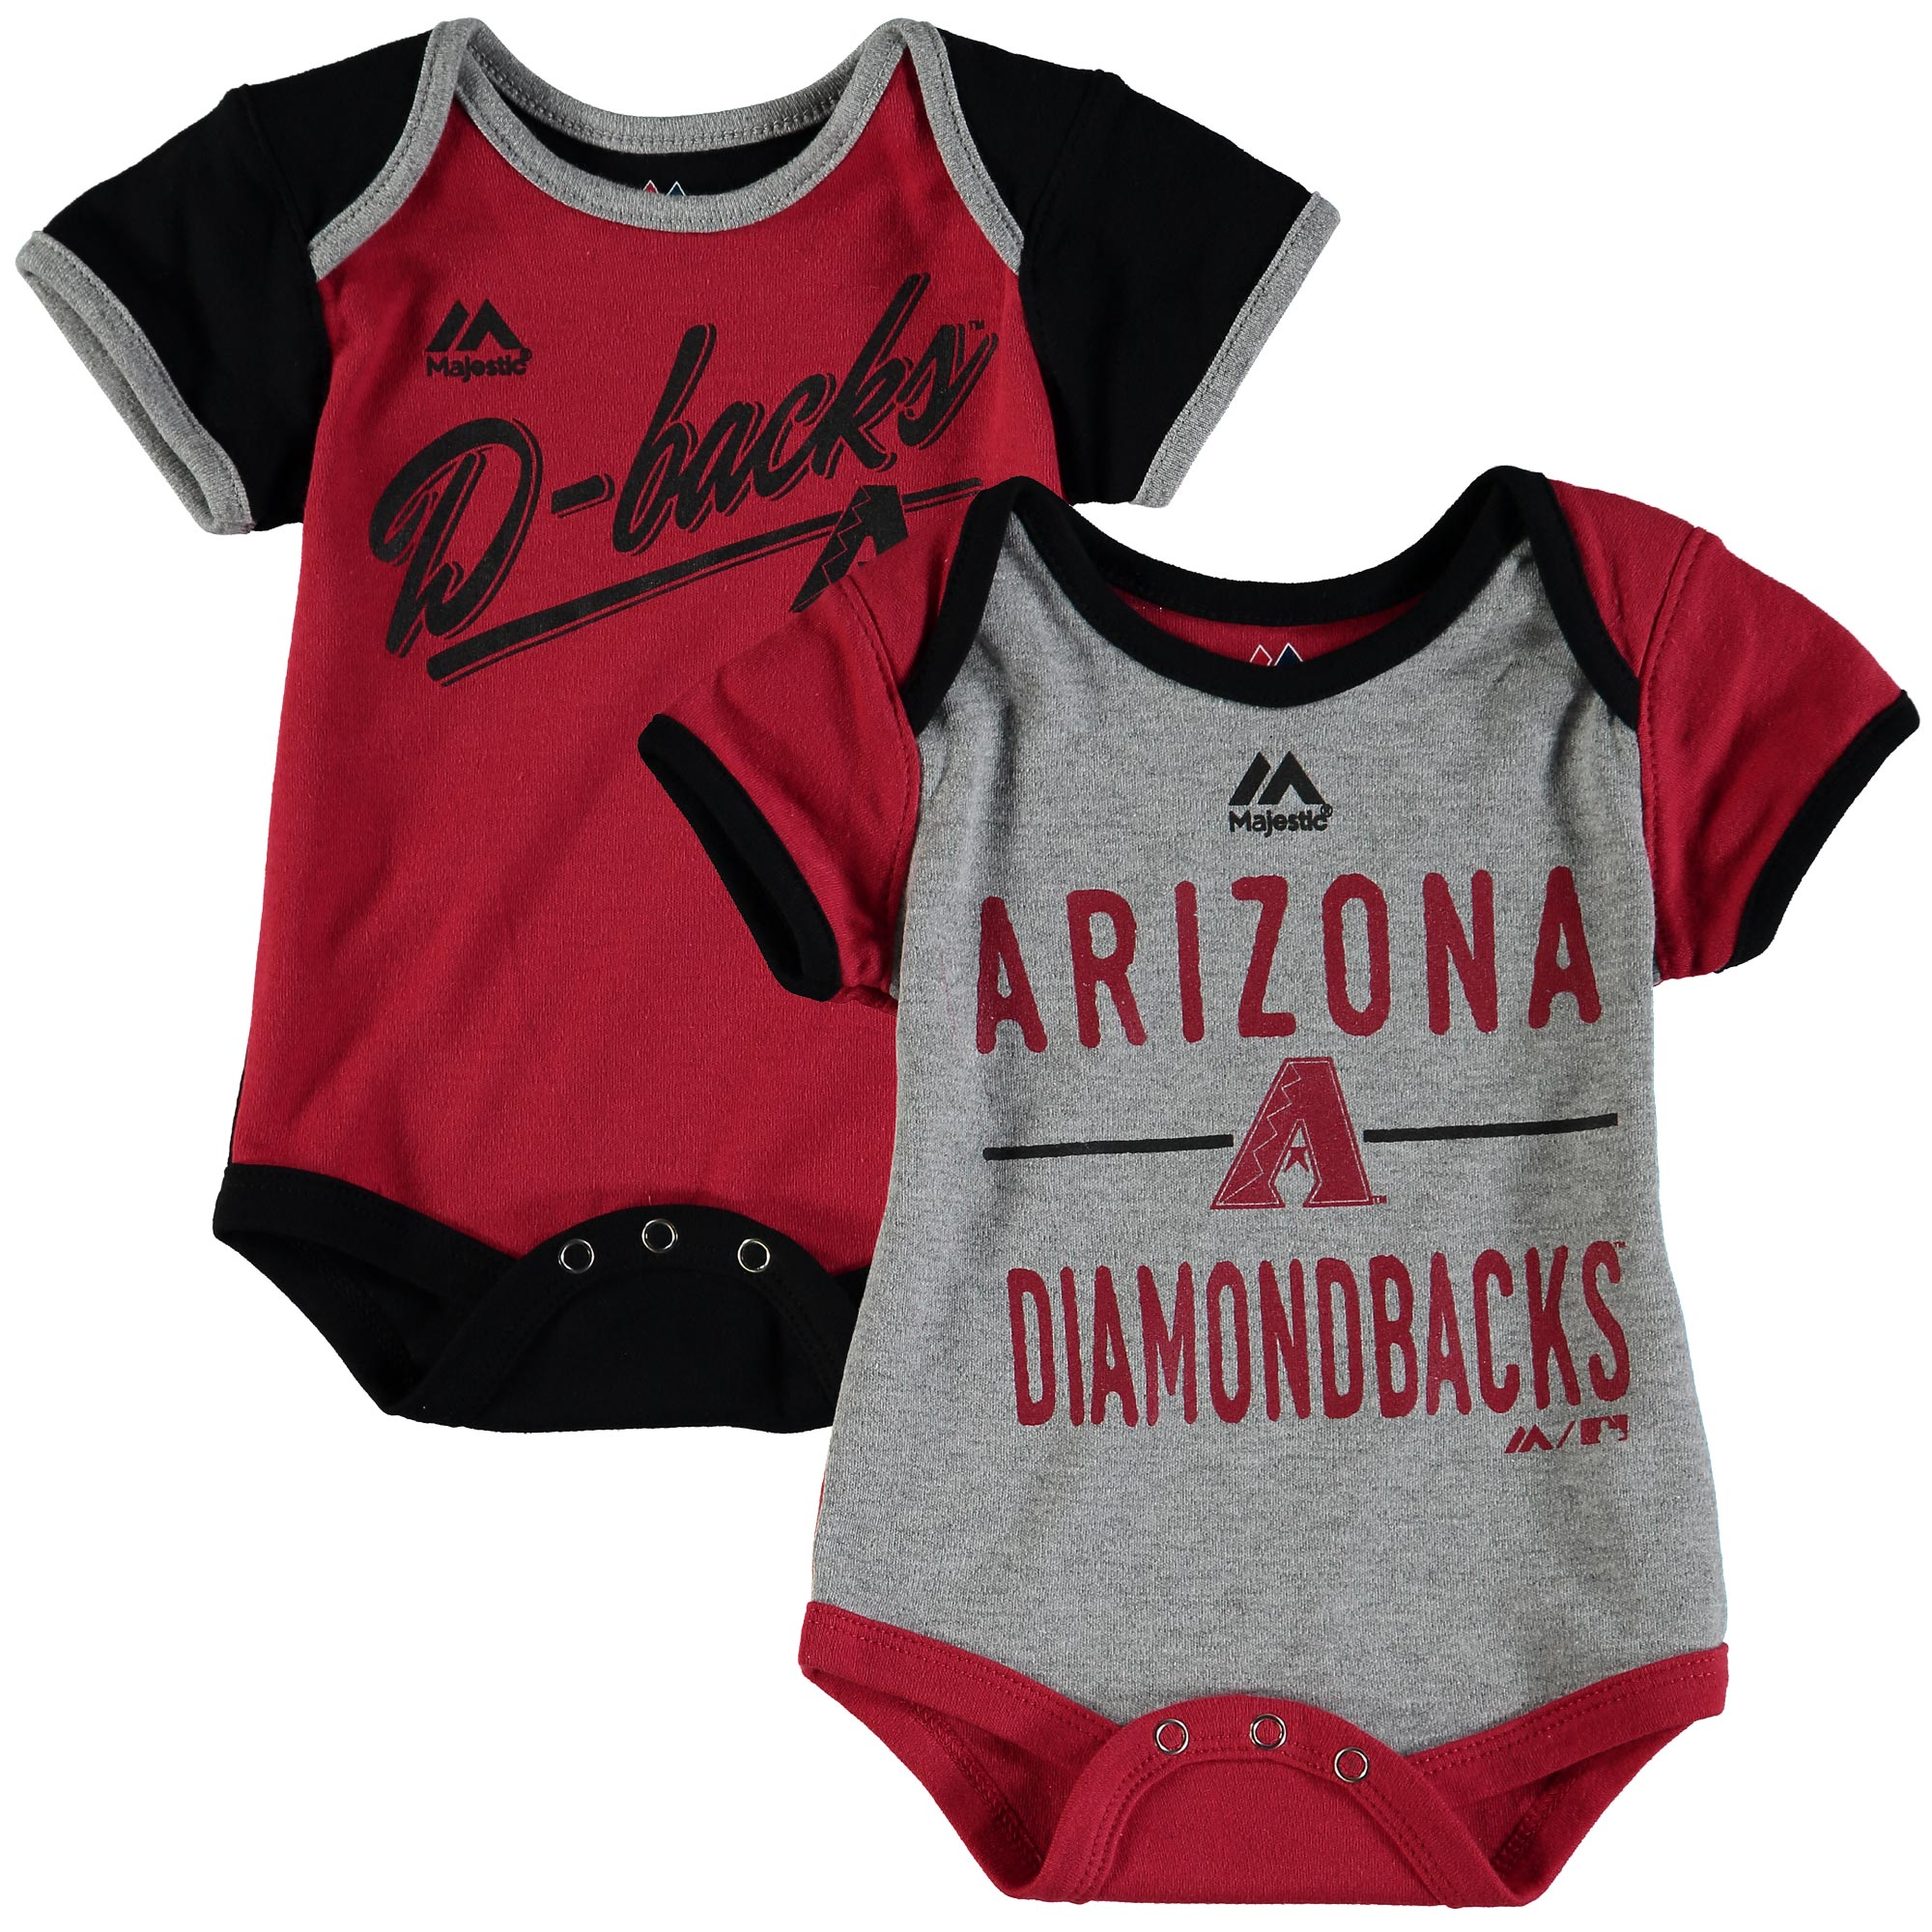 Arizona Diamondbacks Majestic Newborn & Infant 2-Piece Bodysuit Set - Red/Black